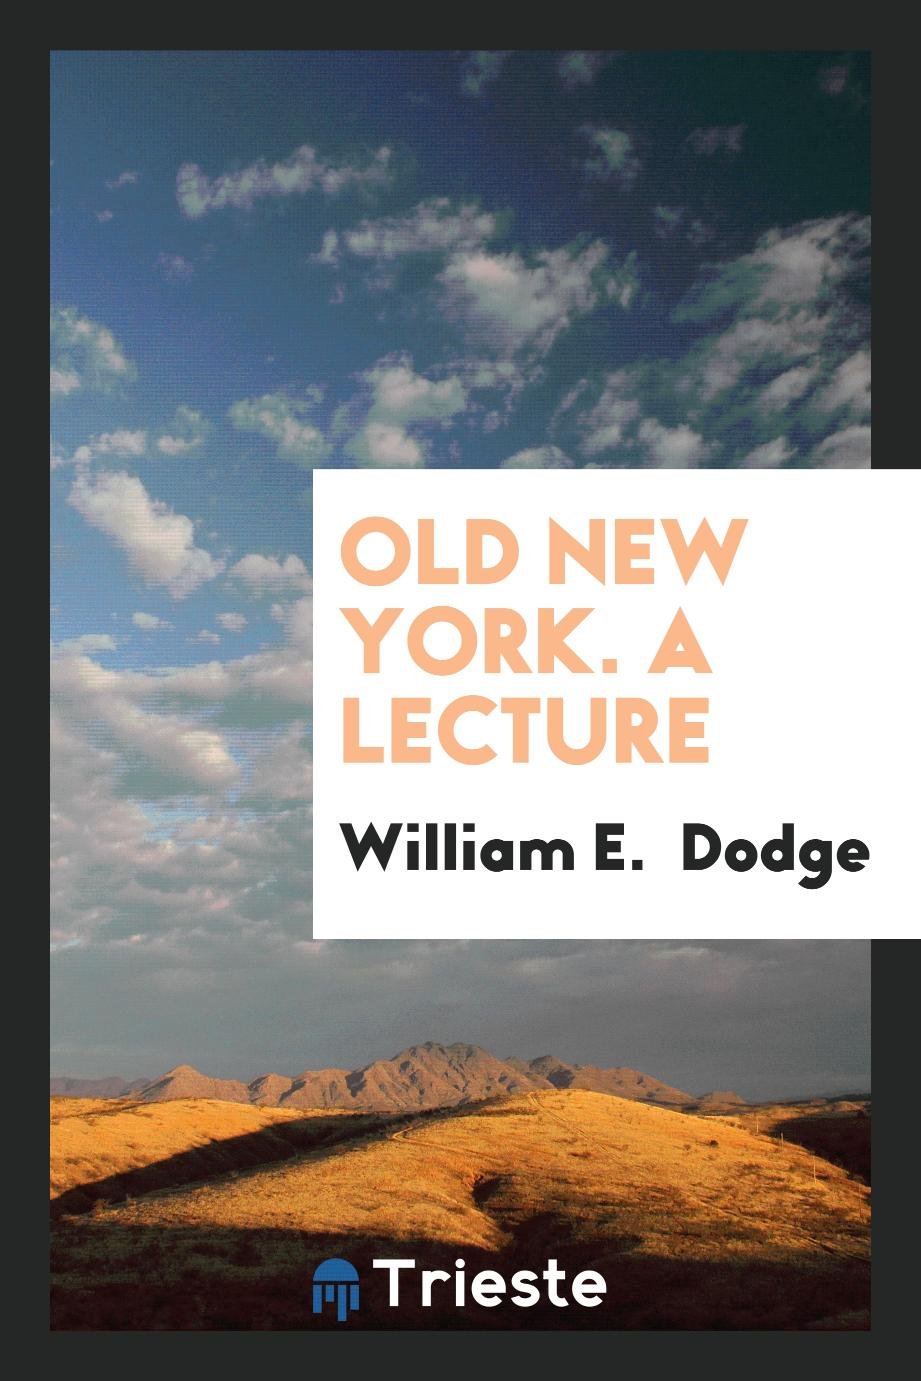 Old New York. A Lecture